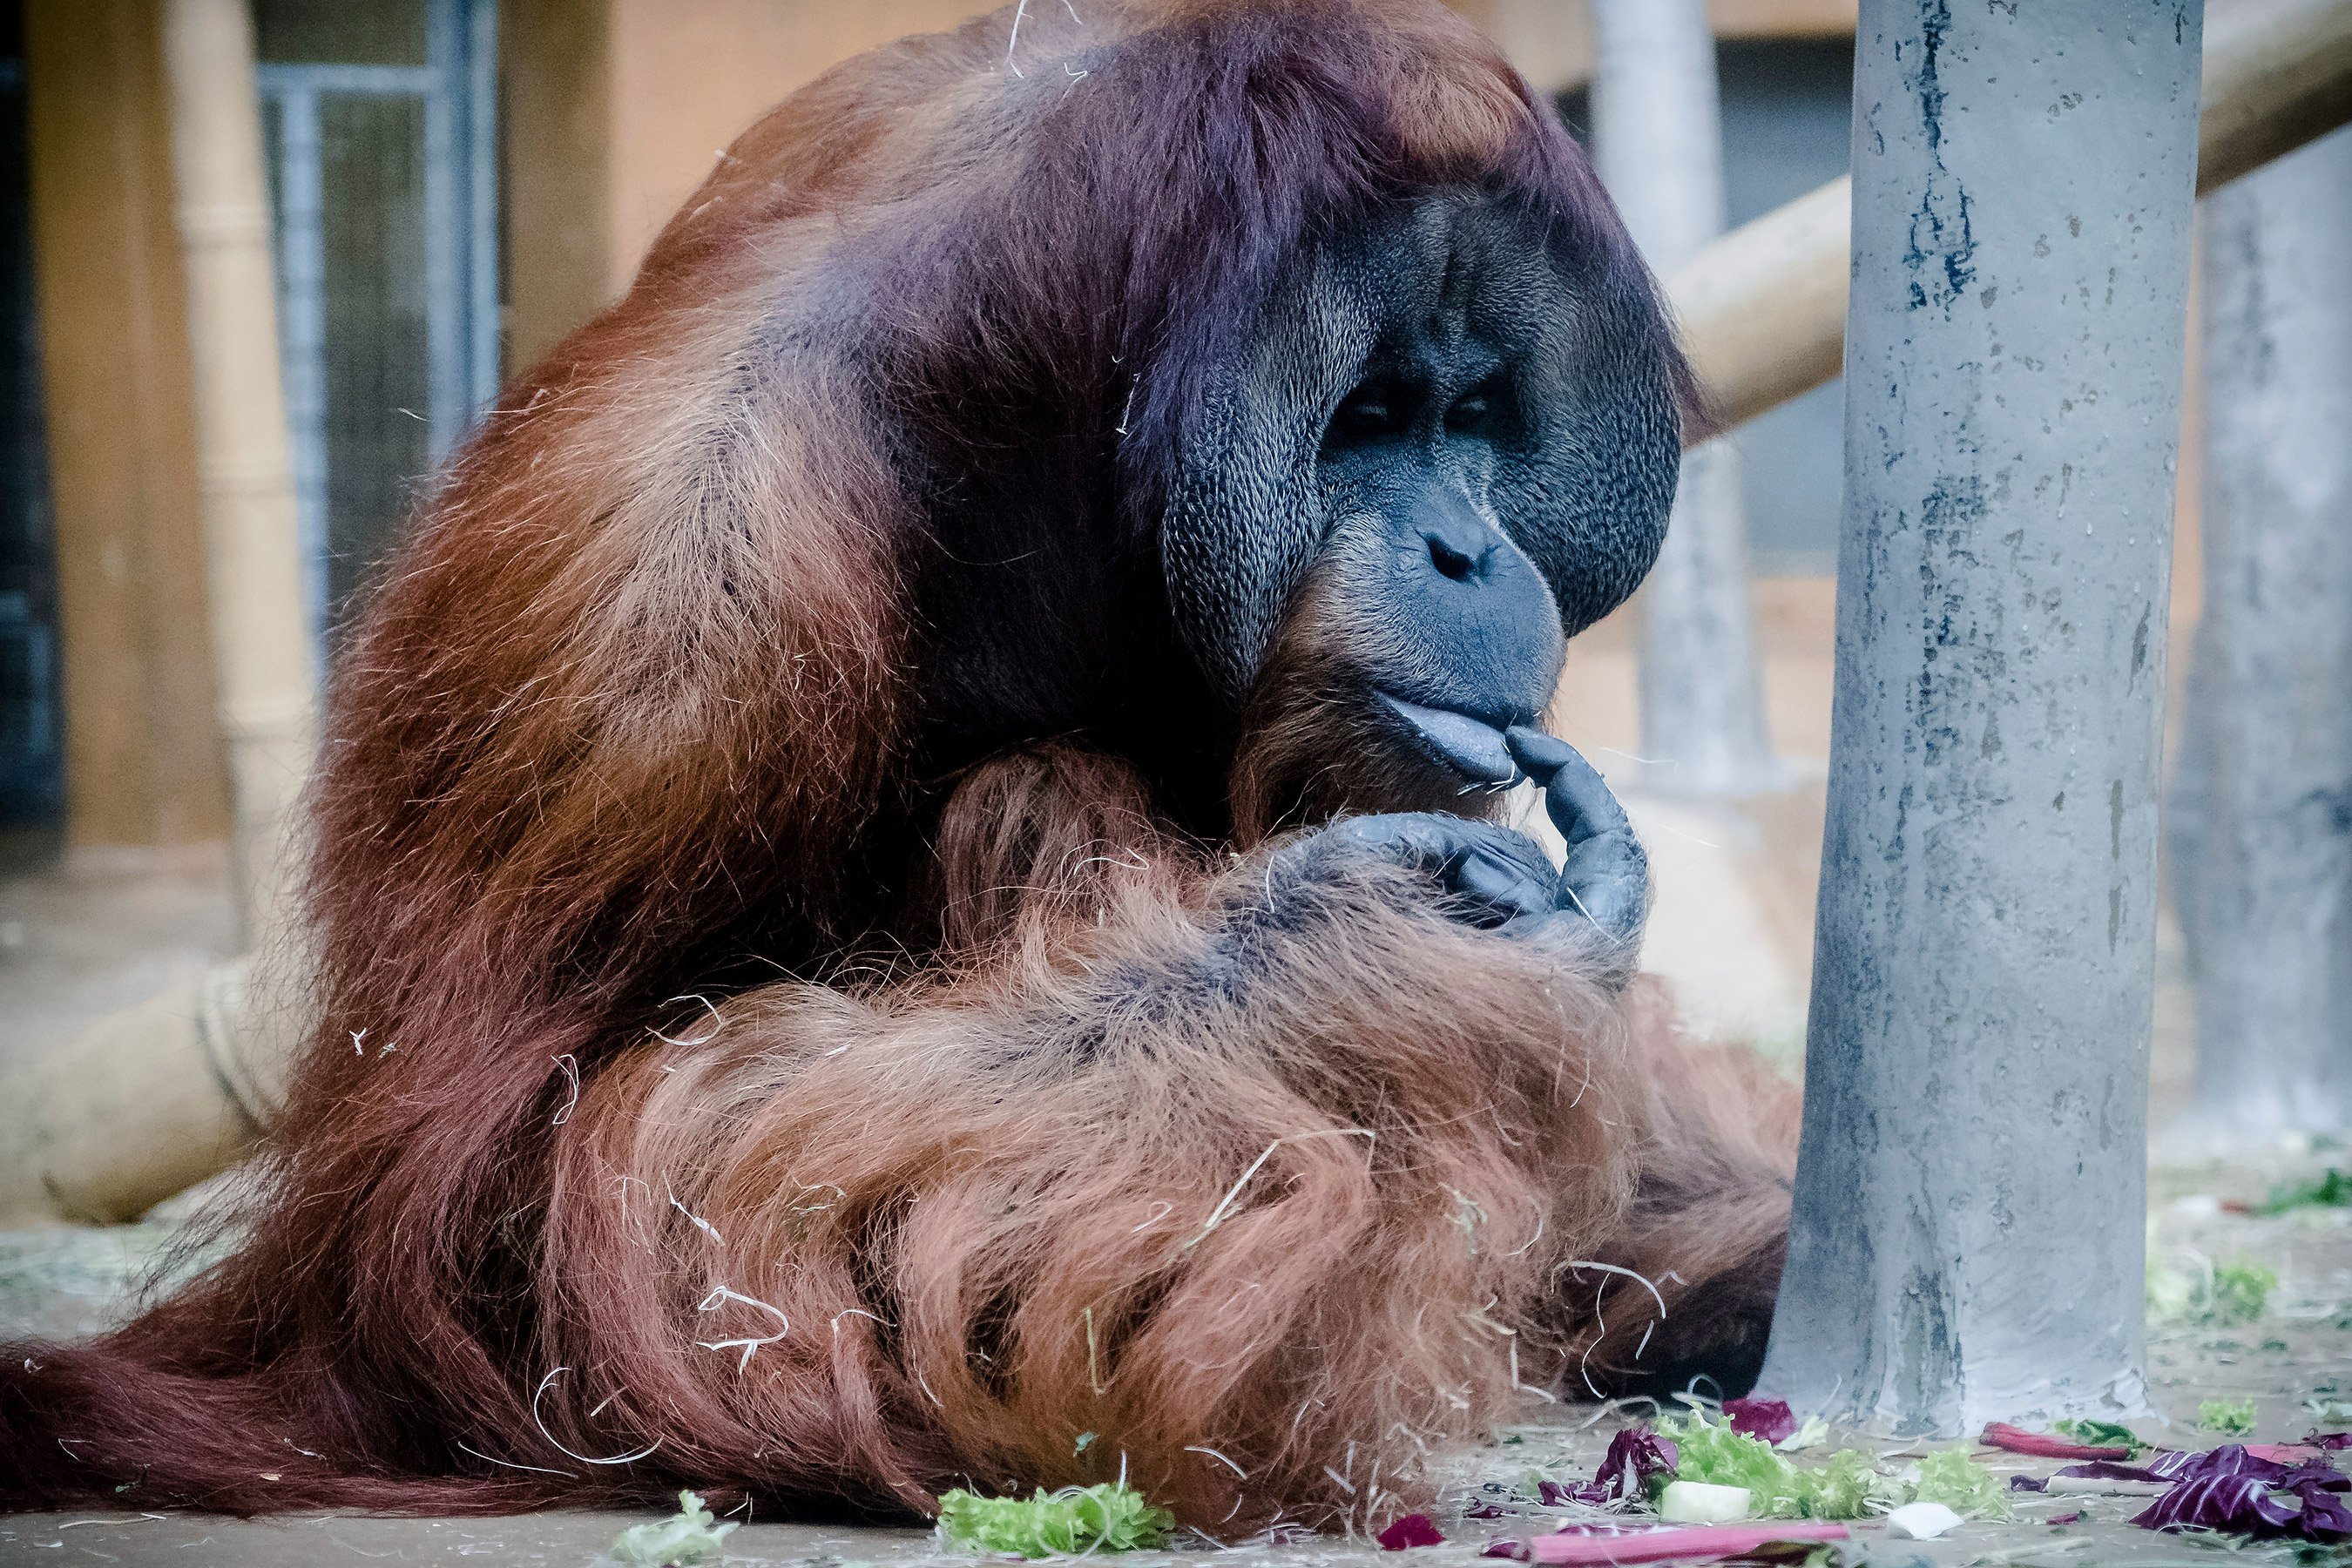 Zoo Orangutan Learning English for His Move from Germany to New Orleans